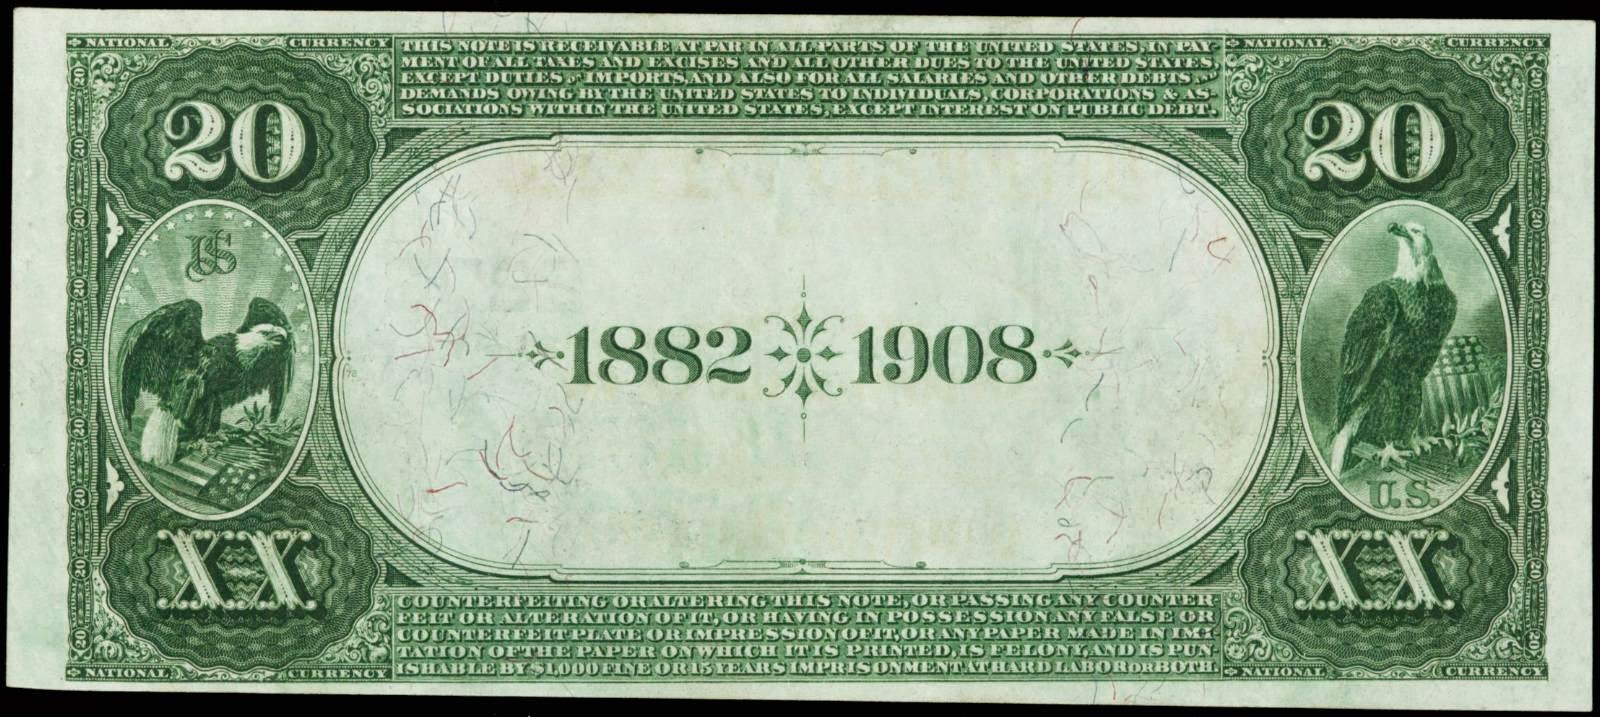 1882 Twenty Dollar Bill Date Back National Currency banknote